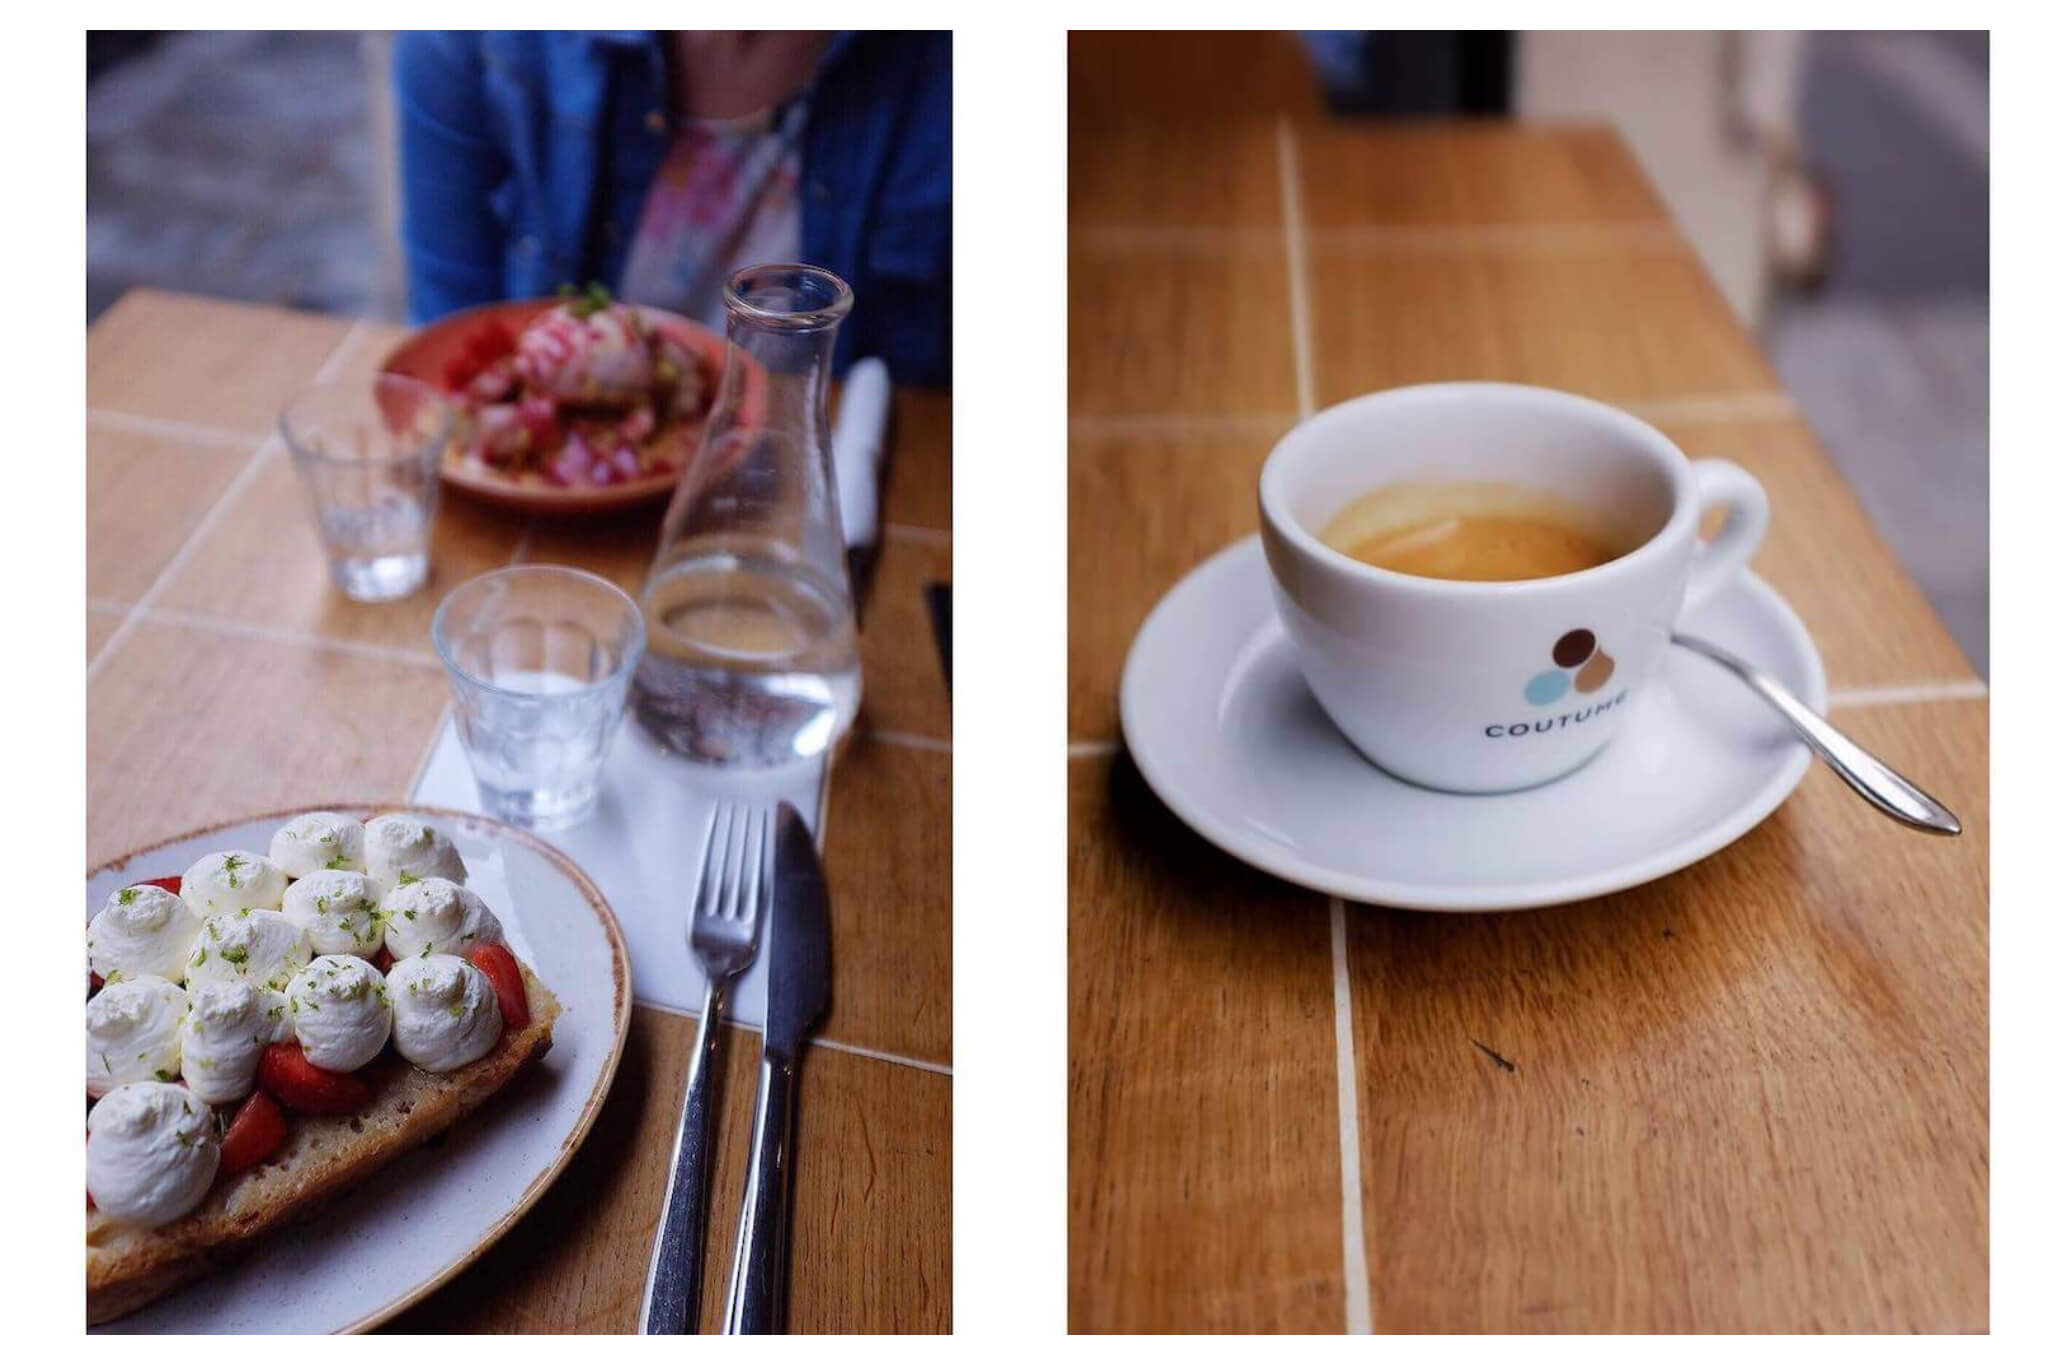 """Left: A plate with a piece of bread with strawberries and cream on top. There is a glass bottle filled with water and two glasses, and another plate of food in front of a person in the background. Right: A white cup of coffee with """"Coutume"""" written on it on white saucer."""